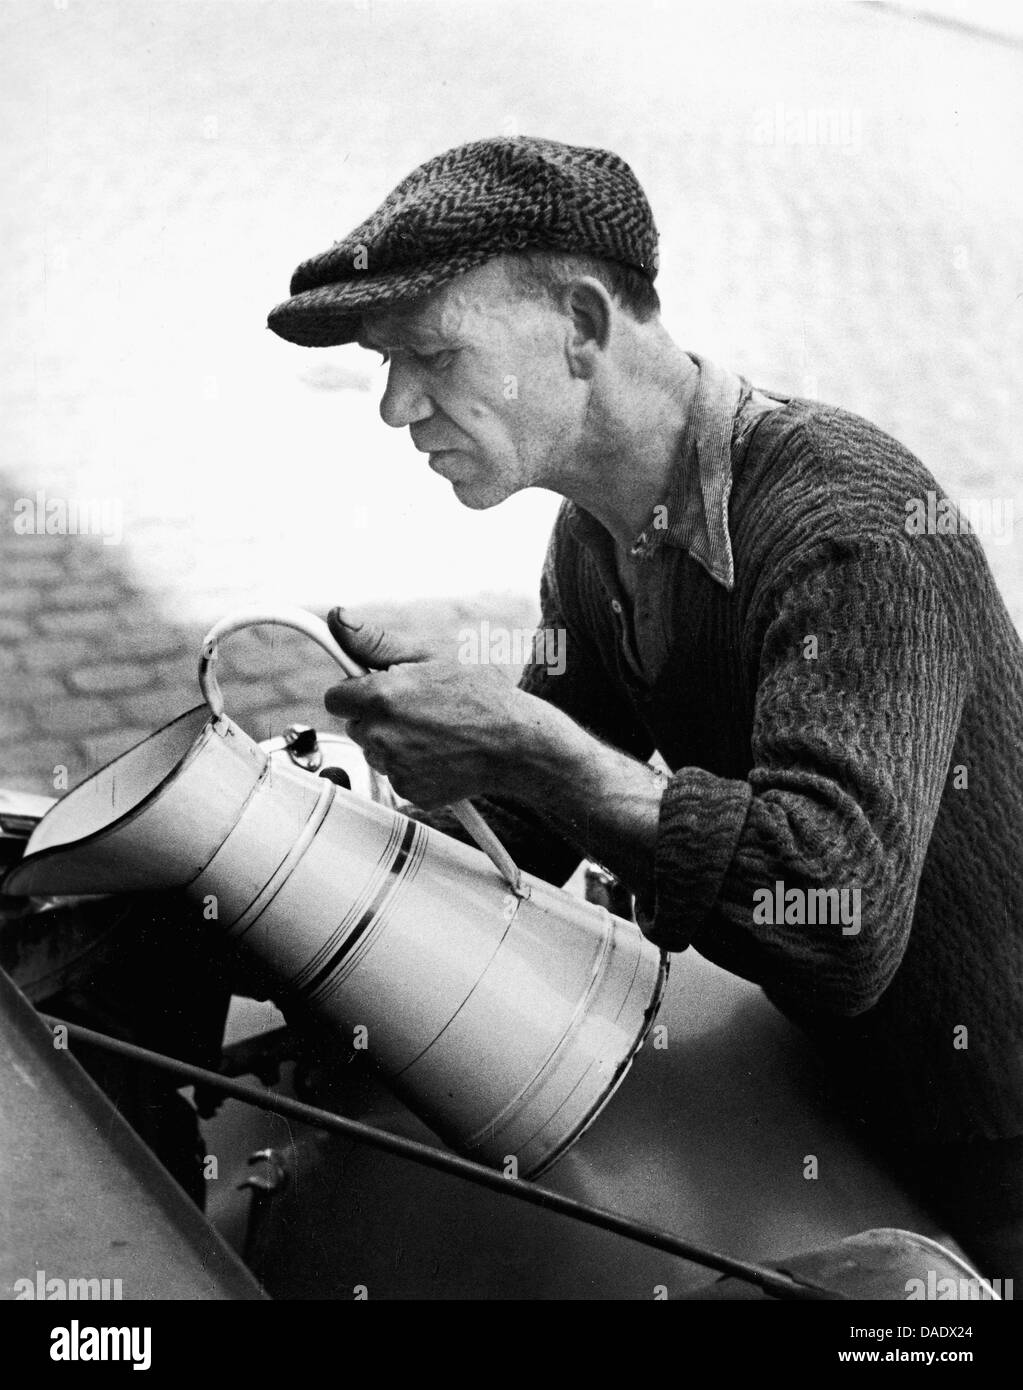 Water pitcher in 1935. Image by photographer Fred Stein (1909-1967) who emigrated 1933 from Nazi Germany to France Stock Photo